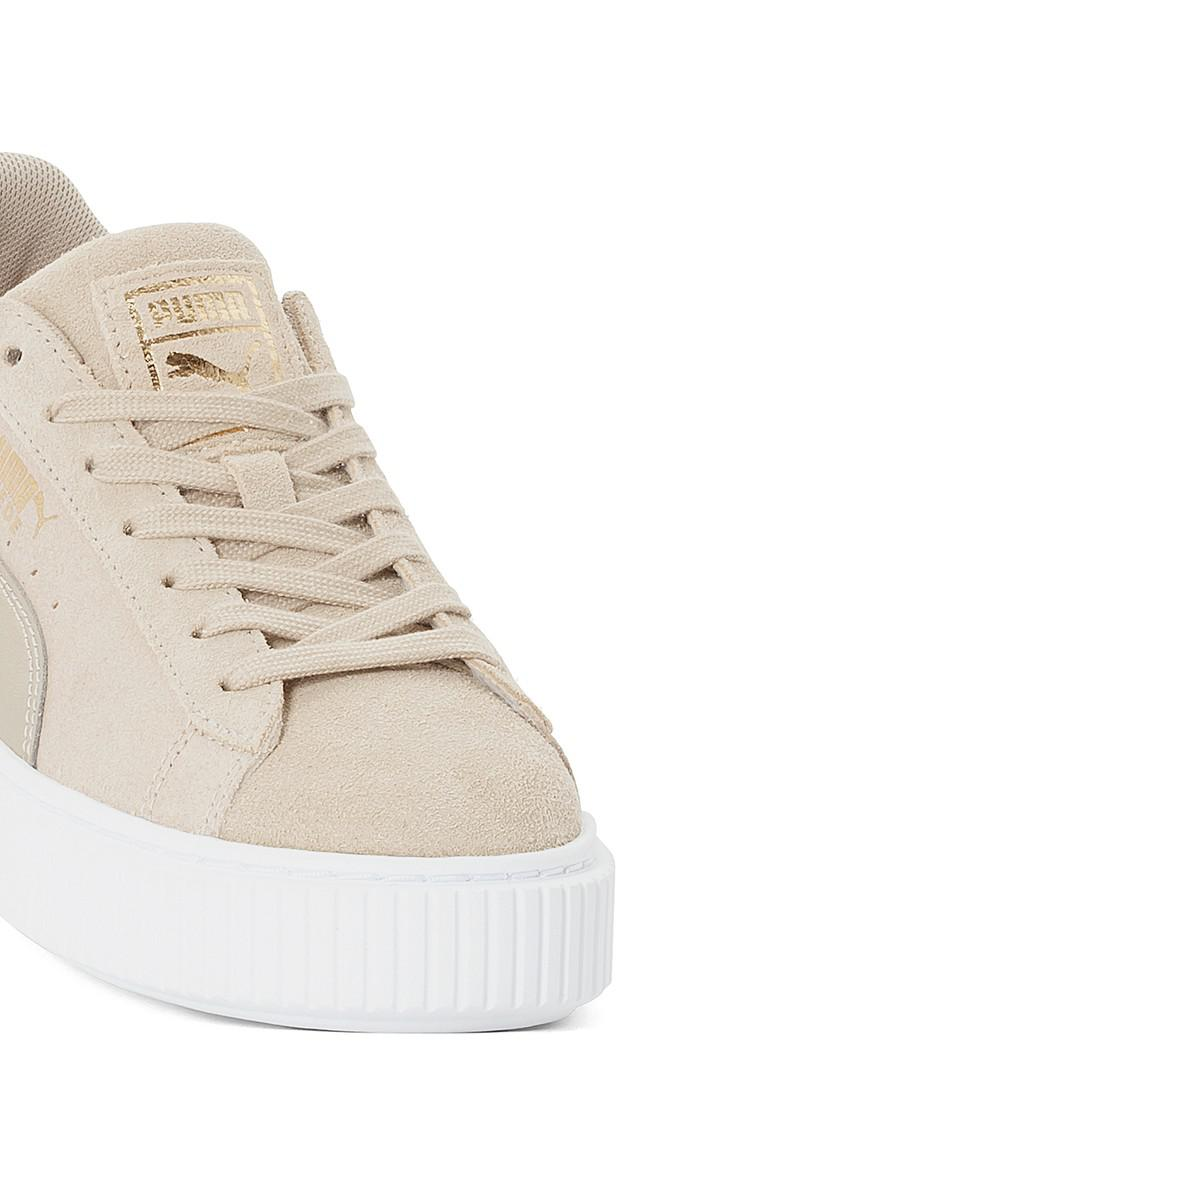 PUMA Safa Platform Leather Trainers latest cheap price clearance fake buy cheap authentic xjYASx